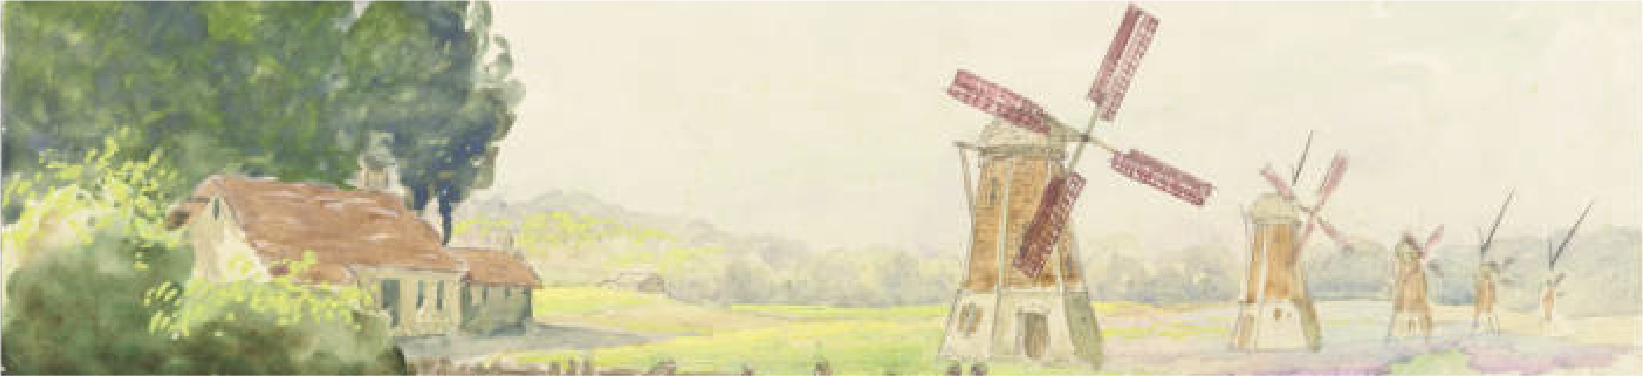 Landscape composition includes a house near a river with windmills. By Tompkins, Albert J. Part of the Twin City Scenic Company Collection, University of Minnesota Performing Arts Archives.